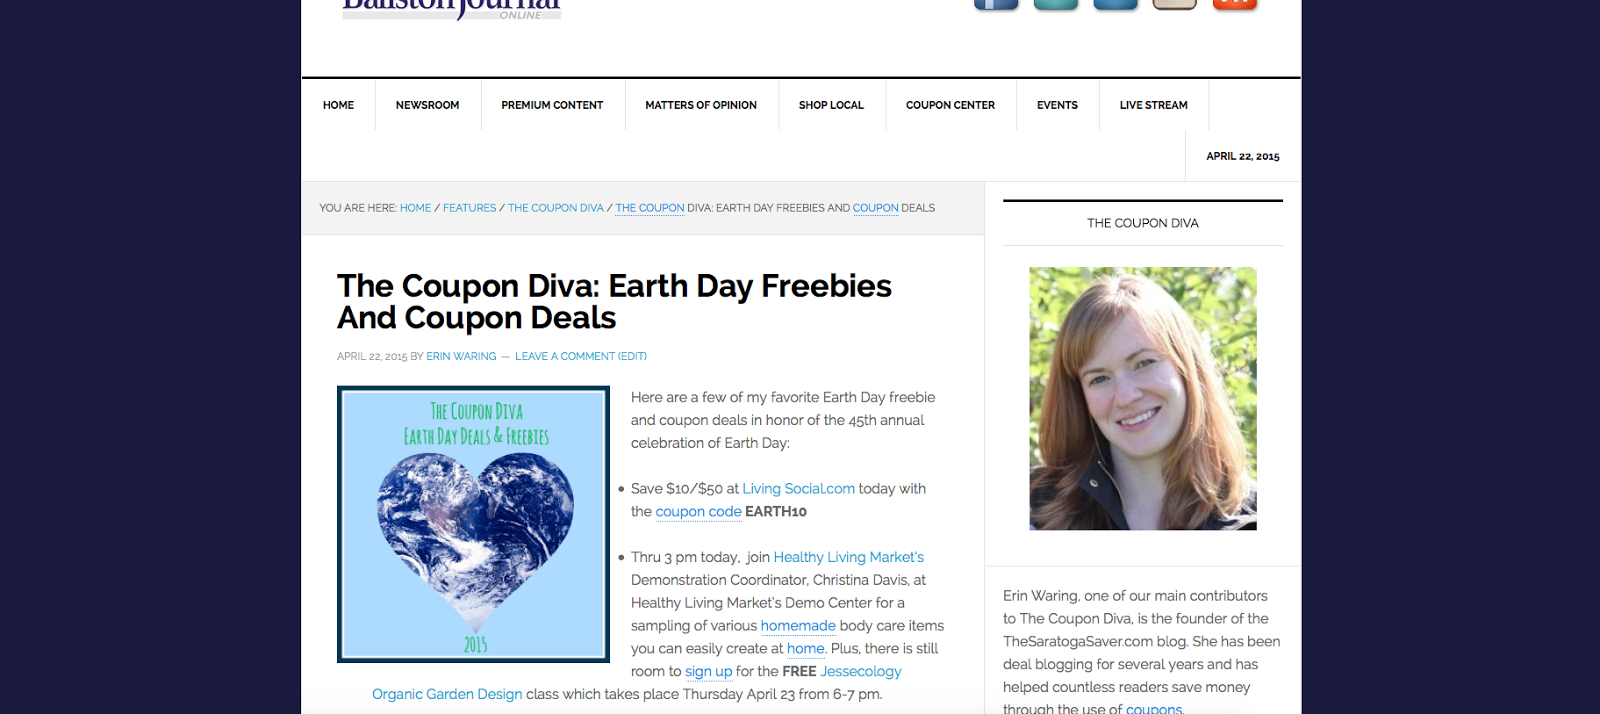 http://theballstonjournal.com/2015/04/22/the-coupon-diva-earth-day-freebies-and-deals/